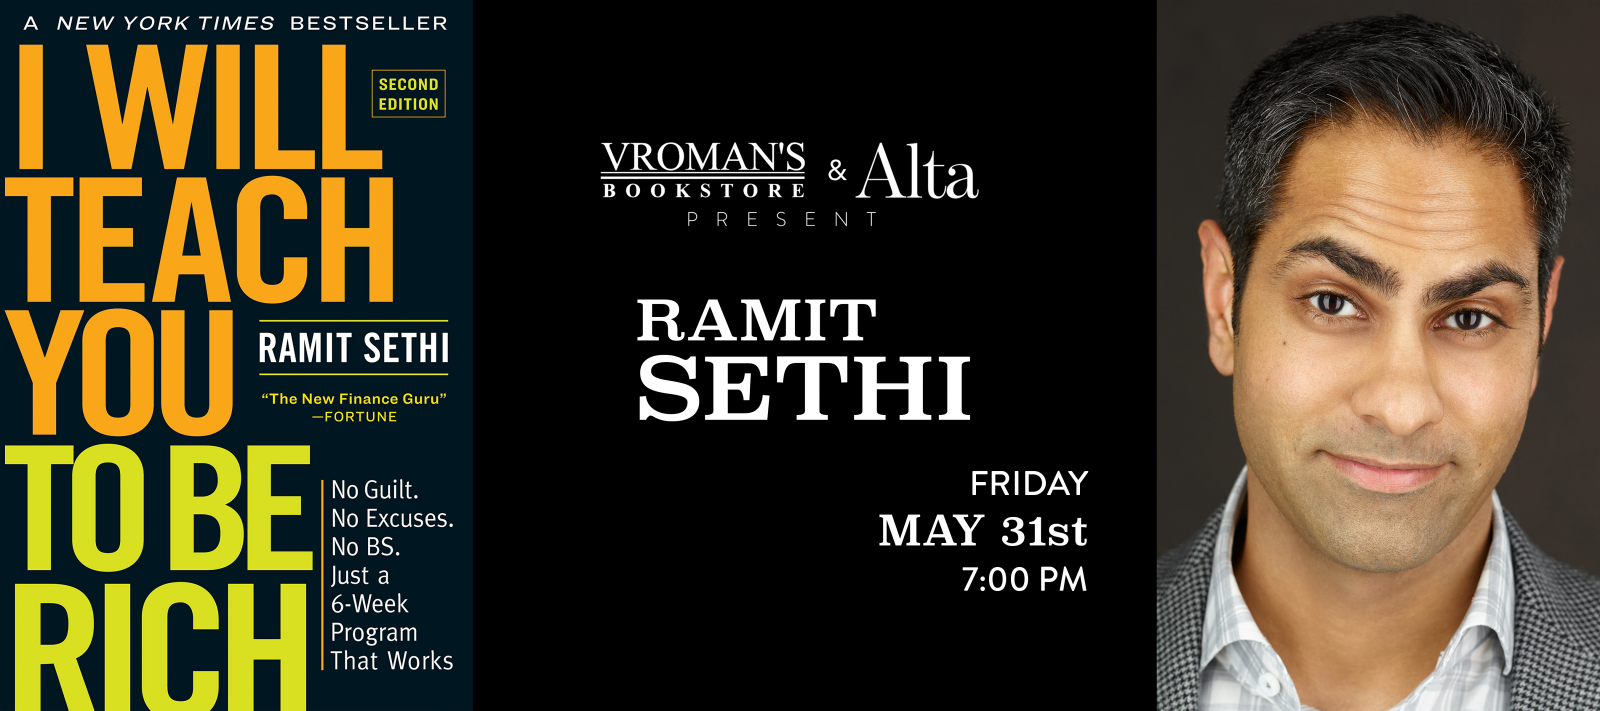 Ramit Sethi book signing Friday May 31st at 7pm